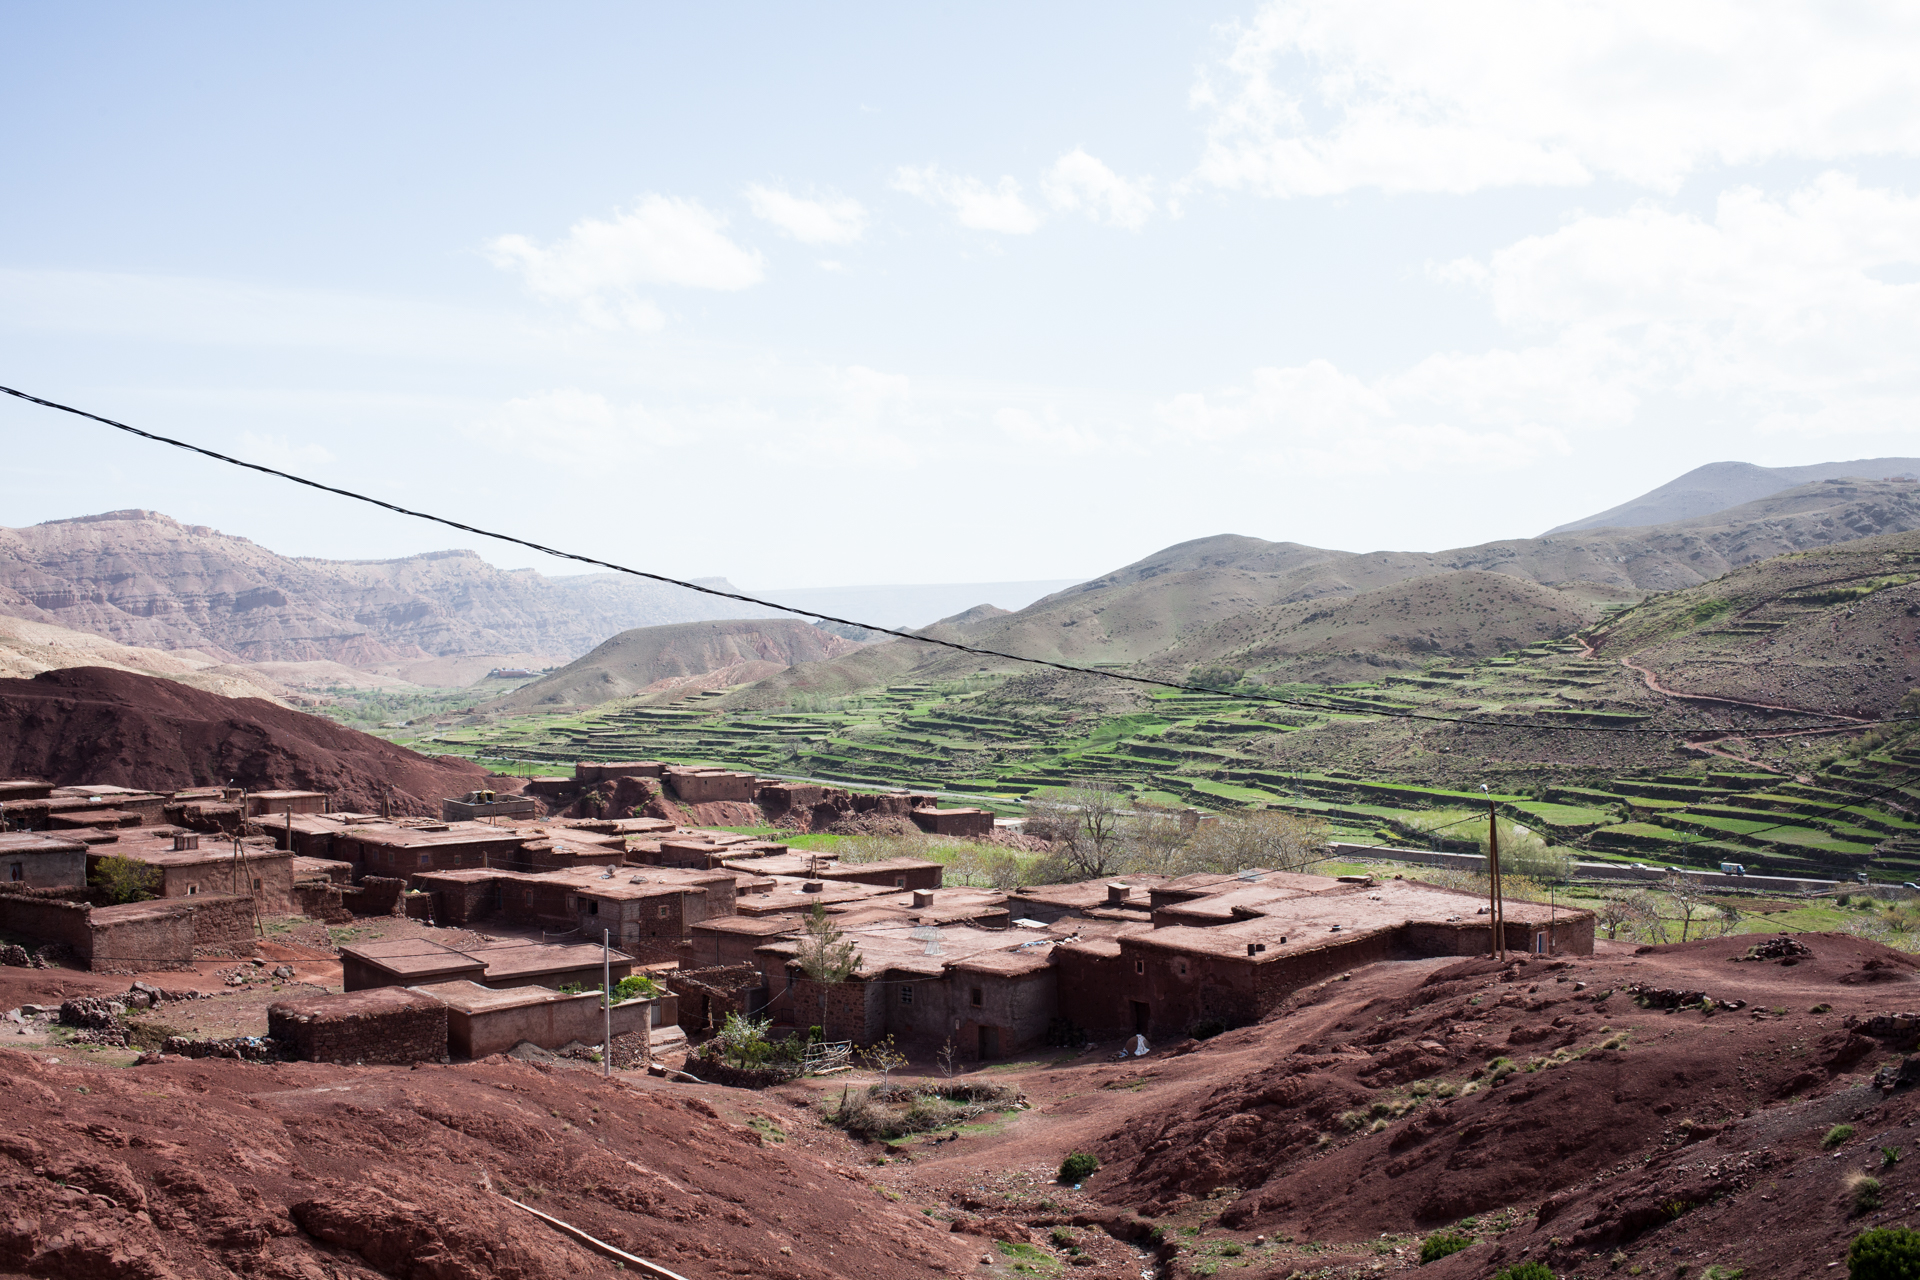 Crossing the Atlas Mountains